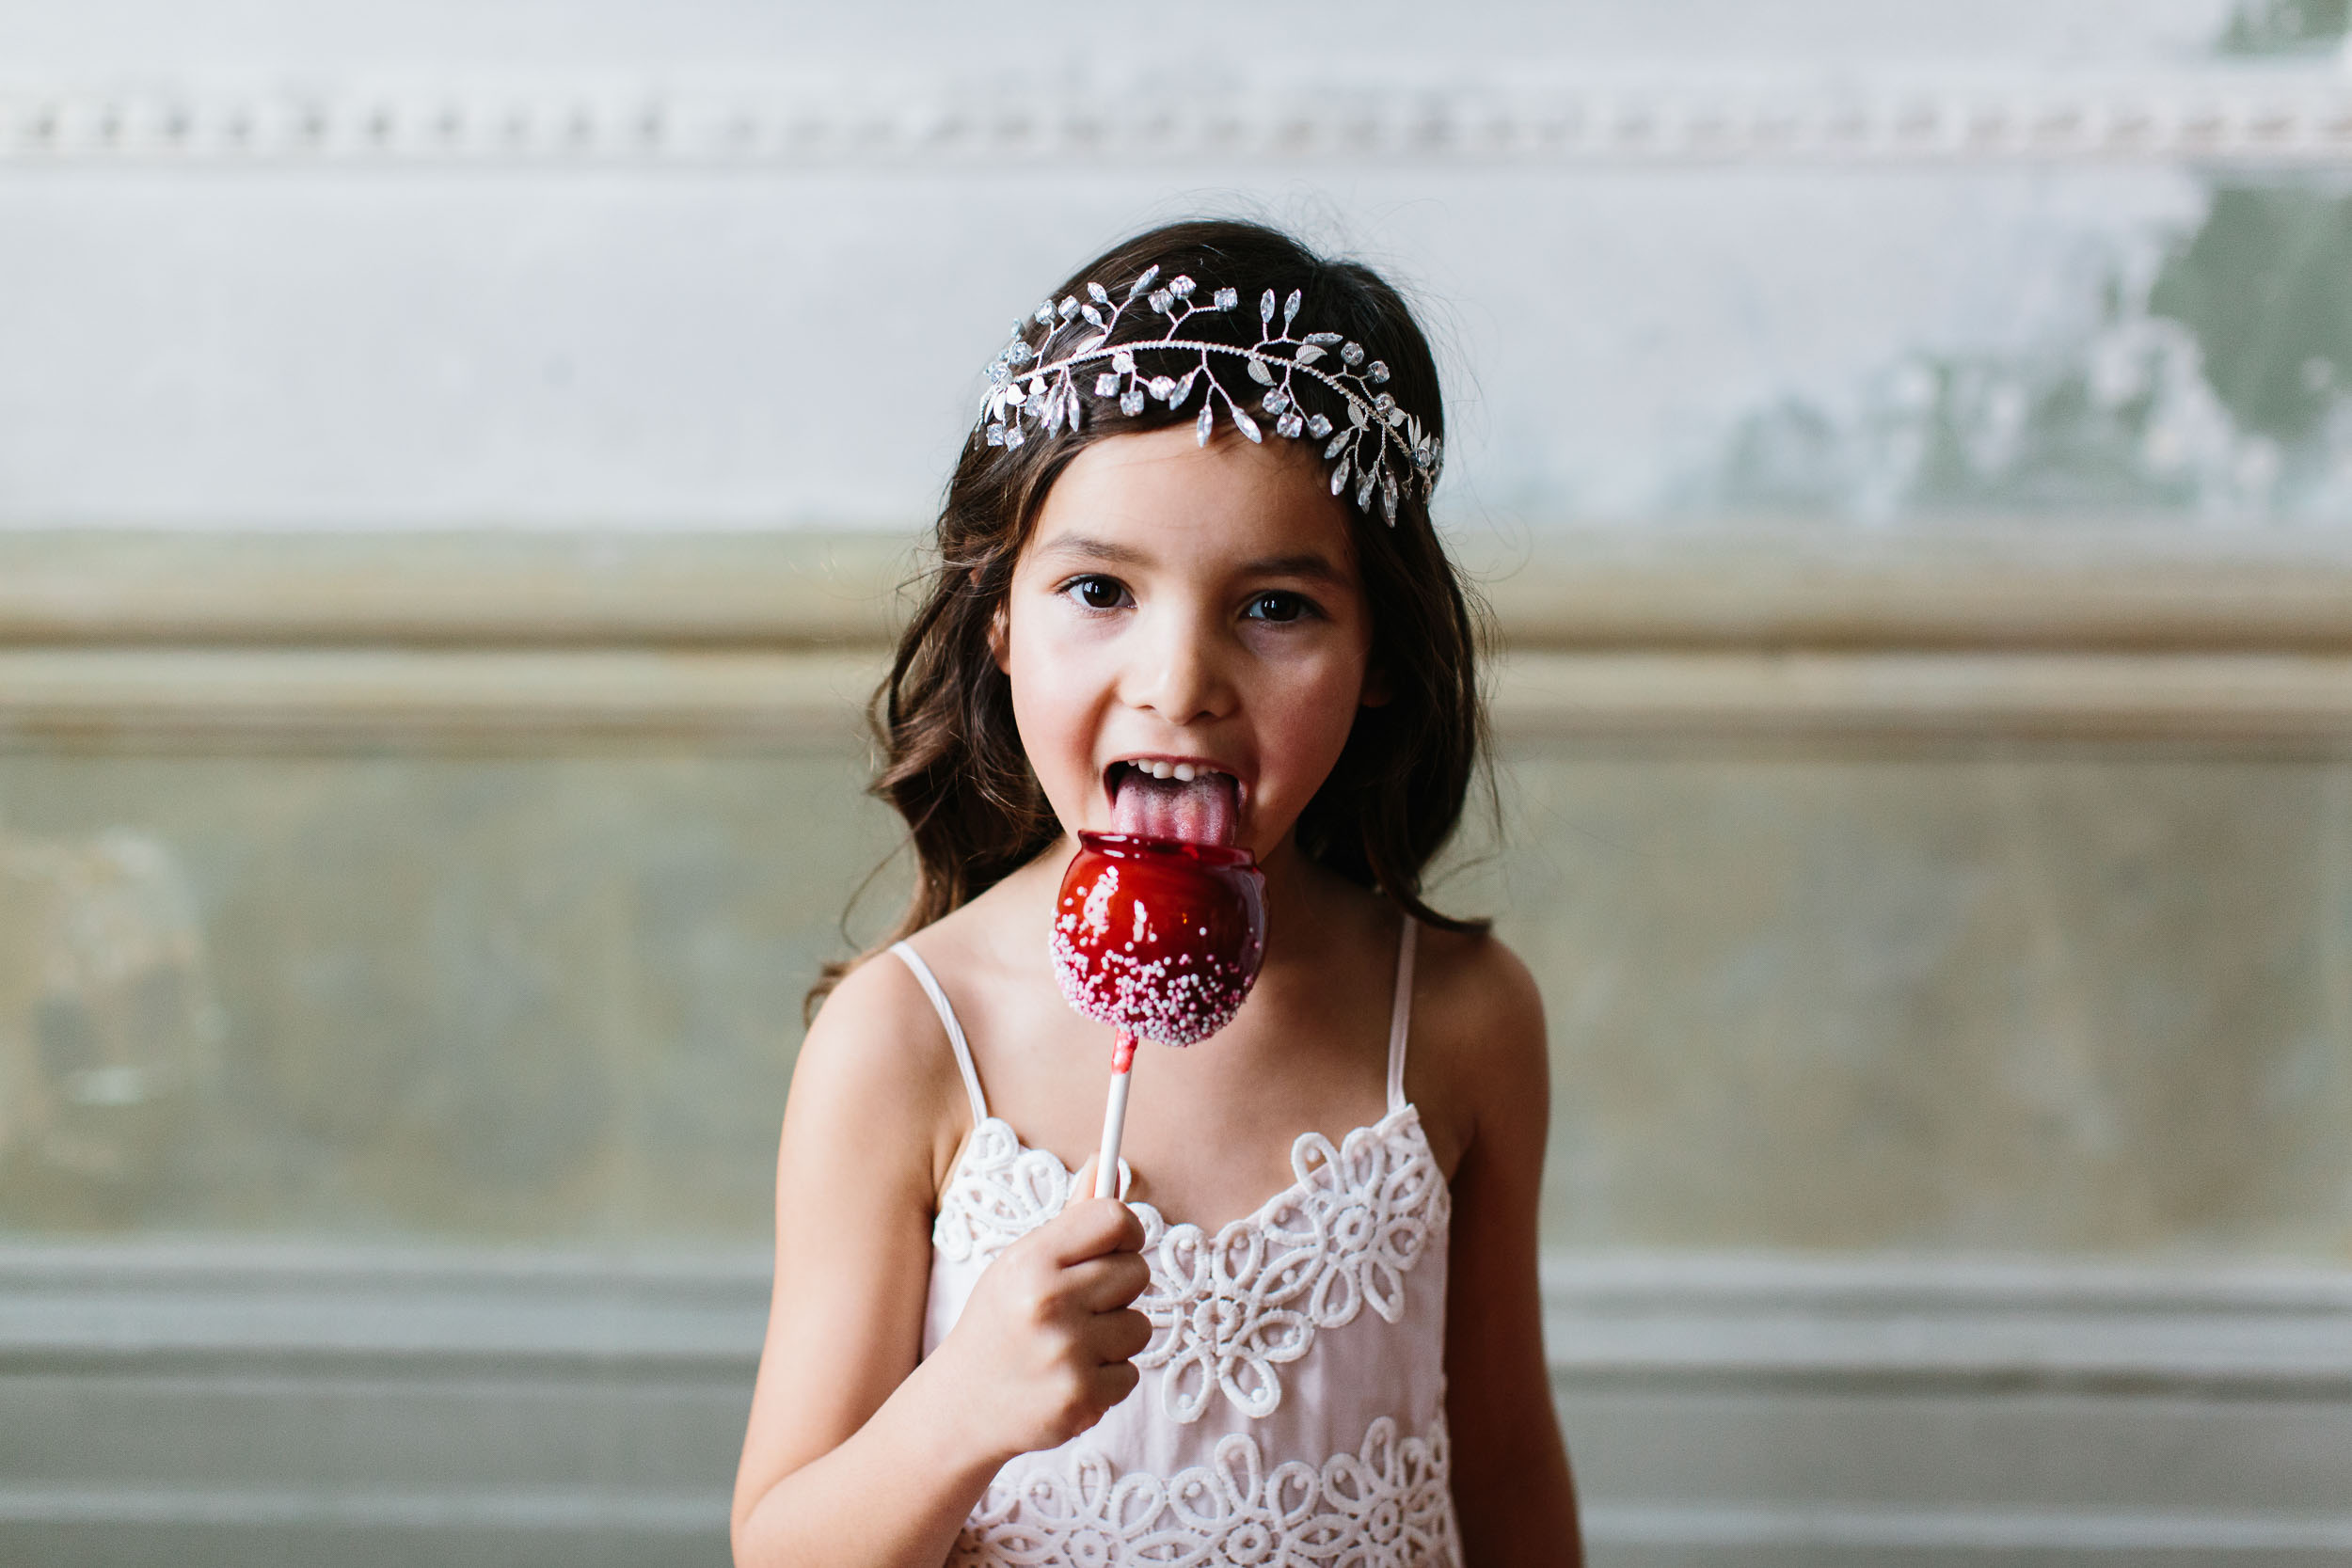 Kas-Richards-Party-with-Lenzo-Witchery-Kids-George-Ballroom-Event-261.jpg